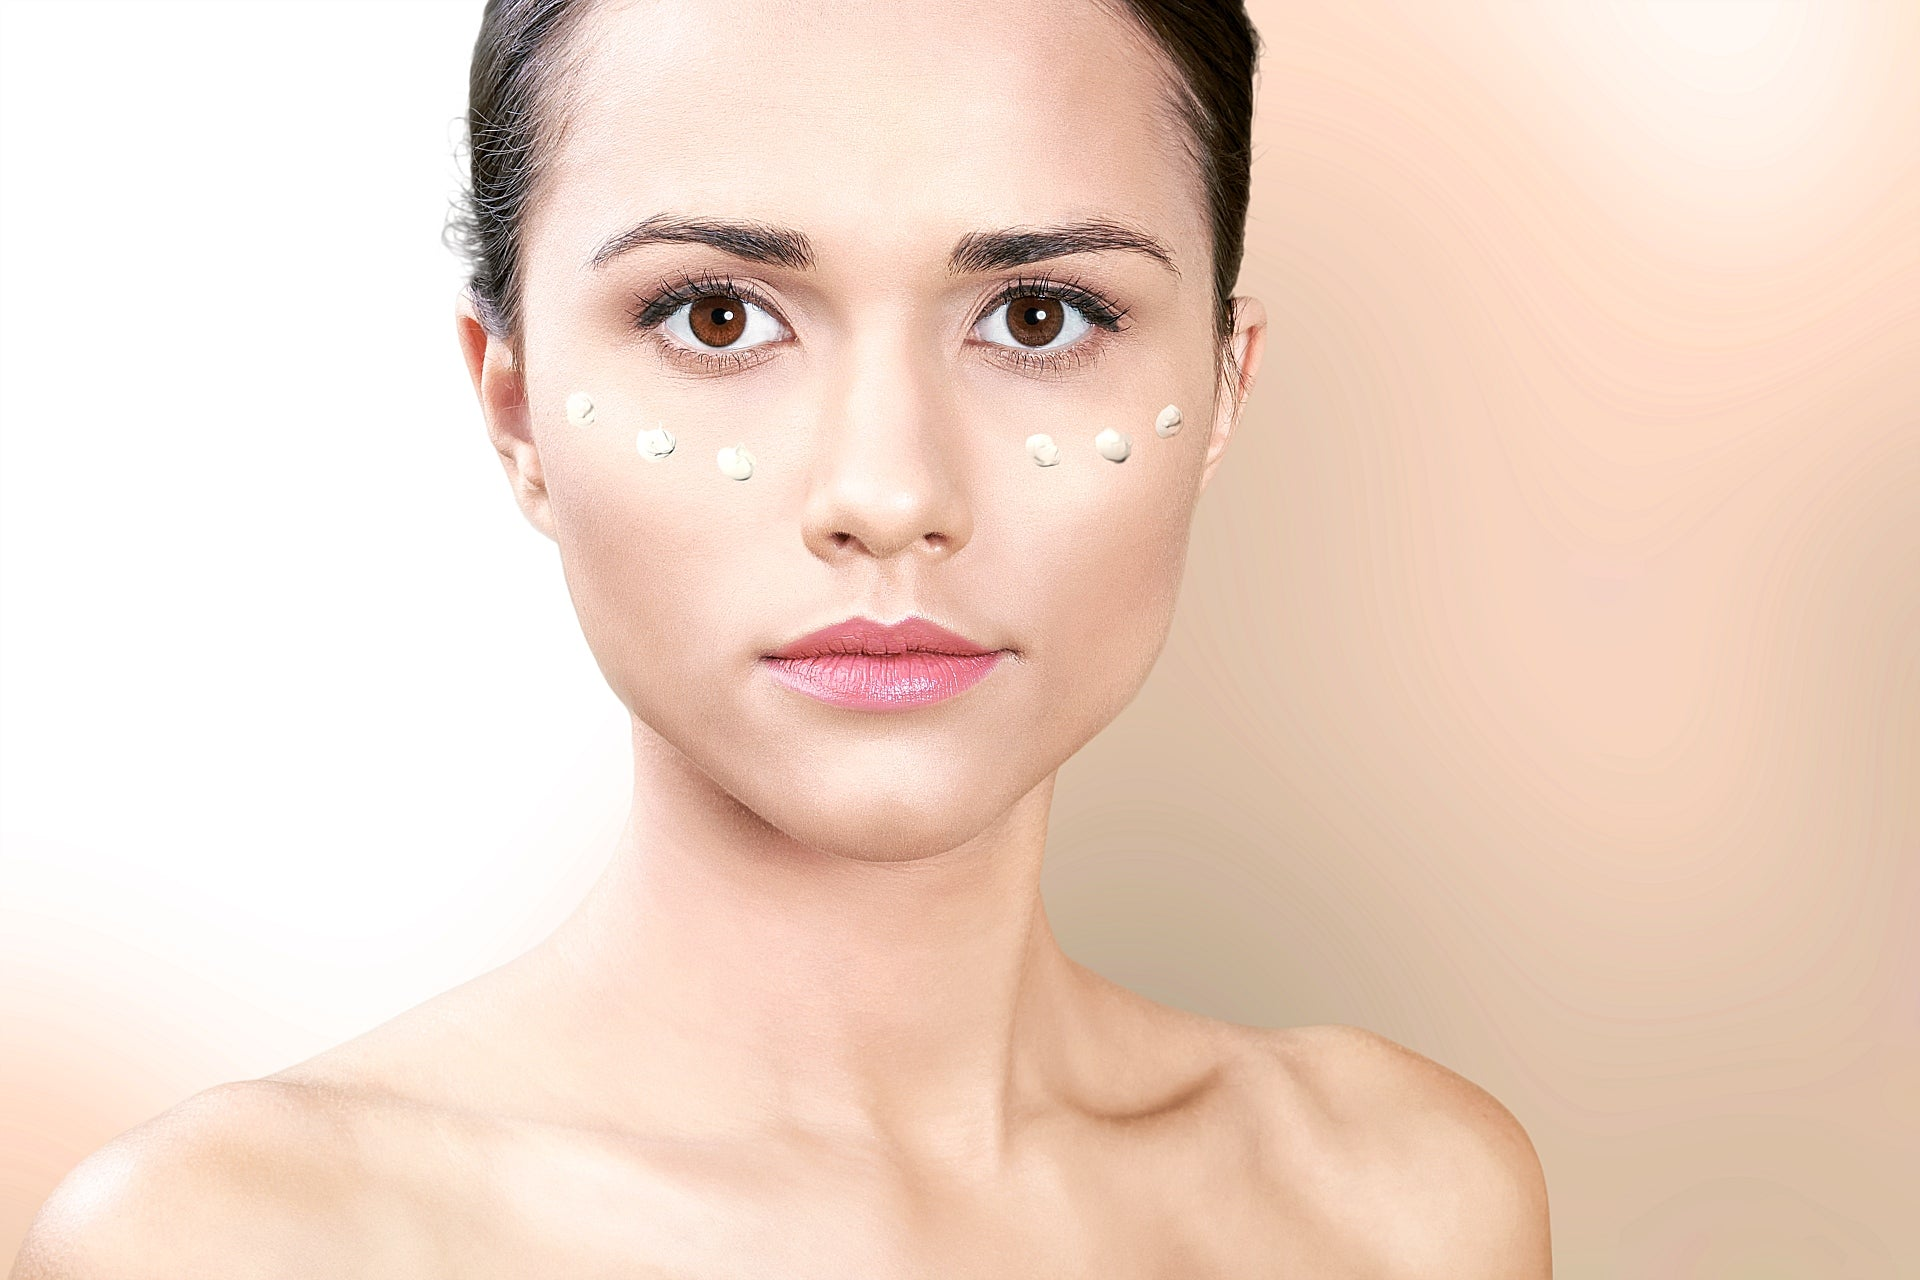 How To Look Great And Feel Great: Reducing The Visibility Of Your Pimples